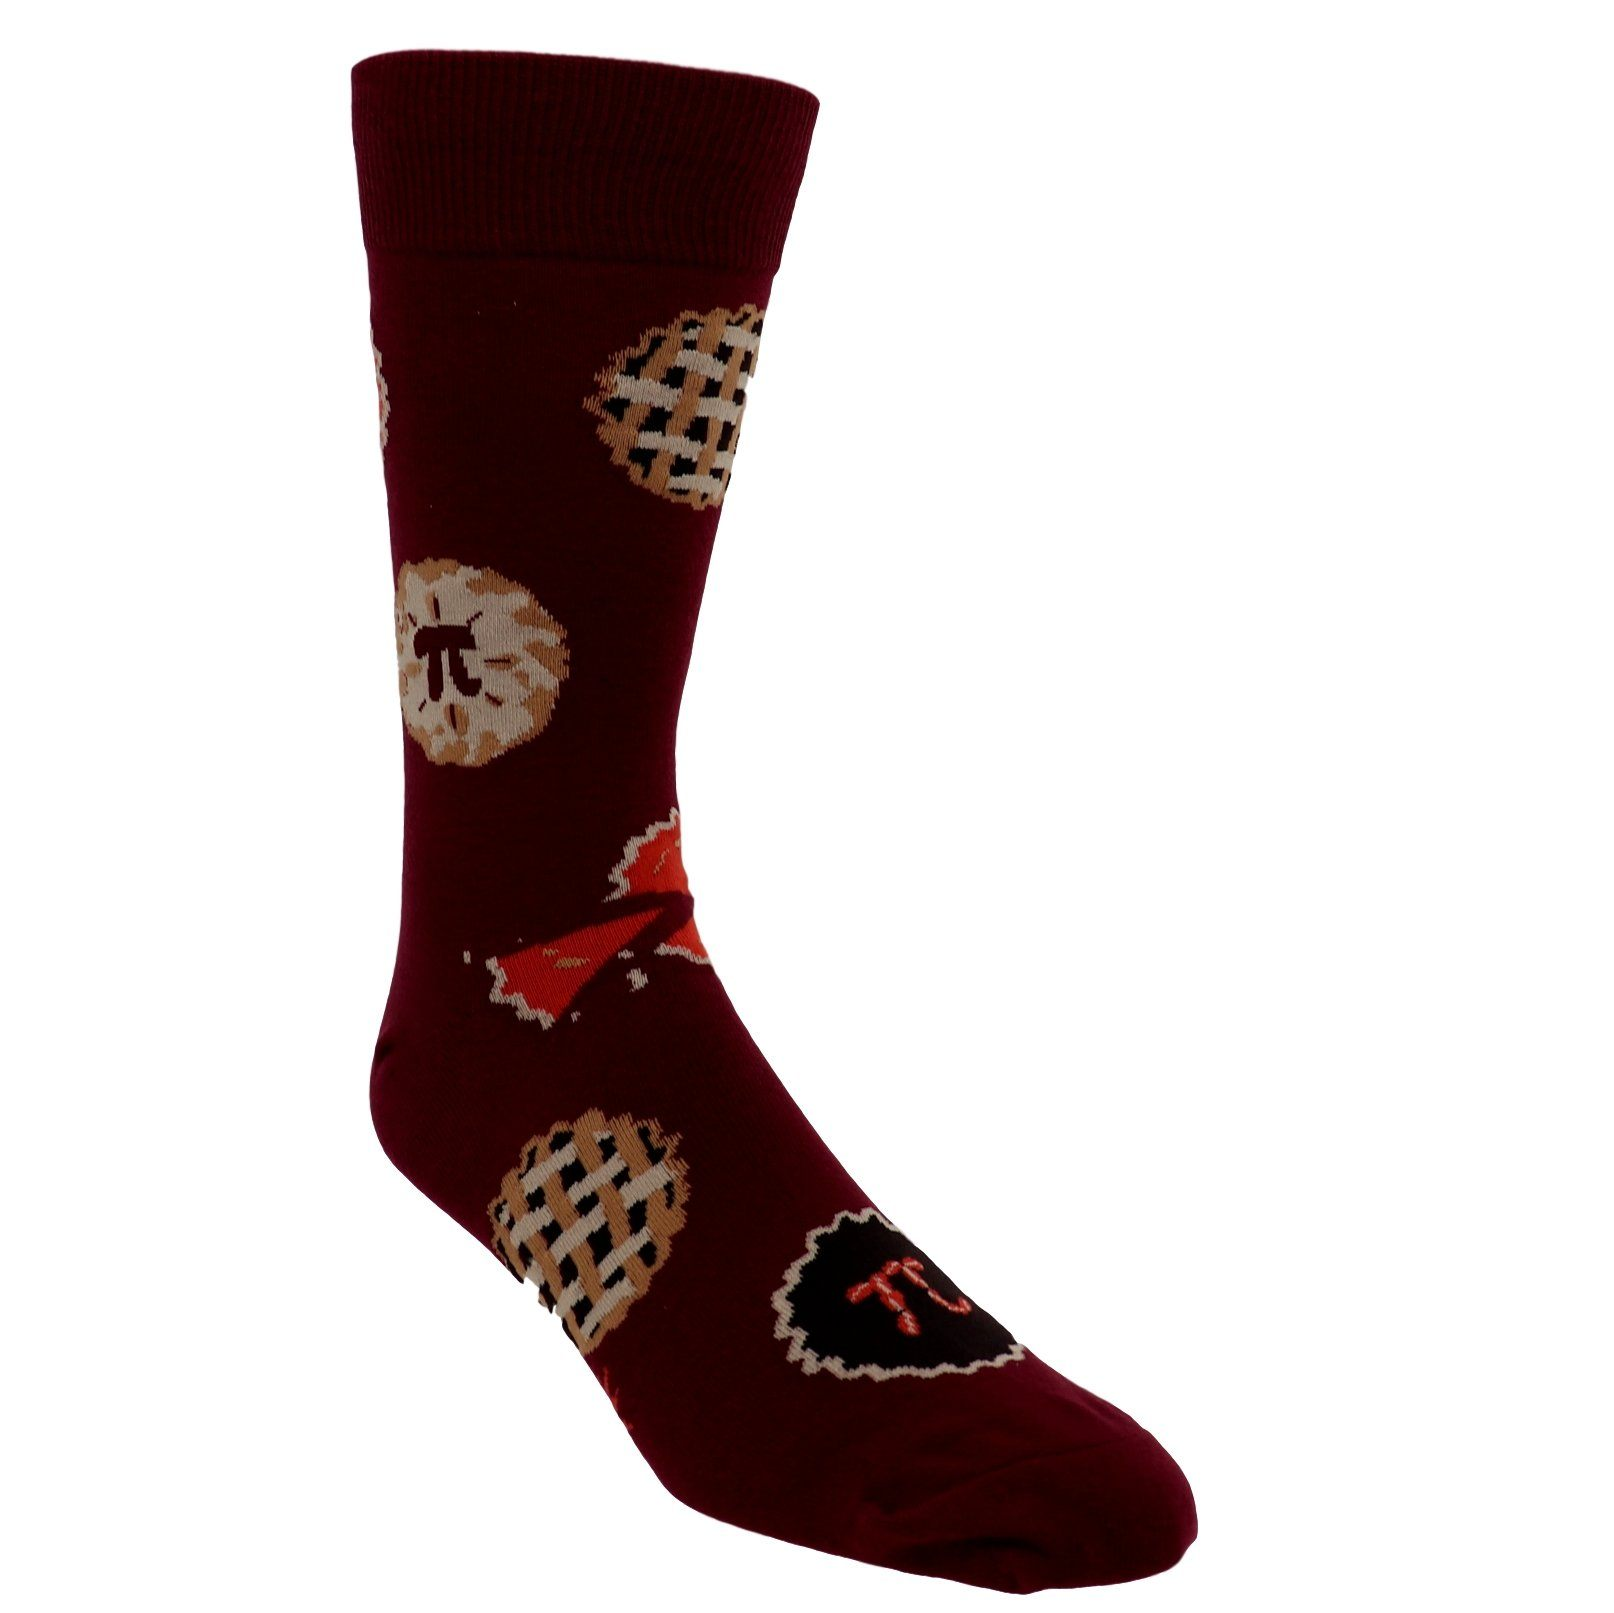 6871bc72d5d1c Geek Socks and Nerd Socks: Nerd up and Geek out with Awesome Socks!